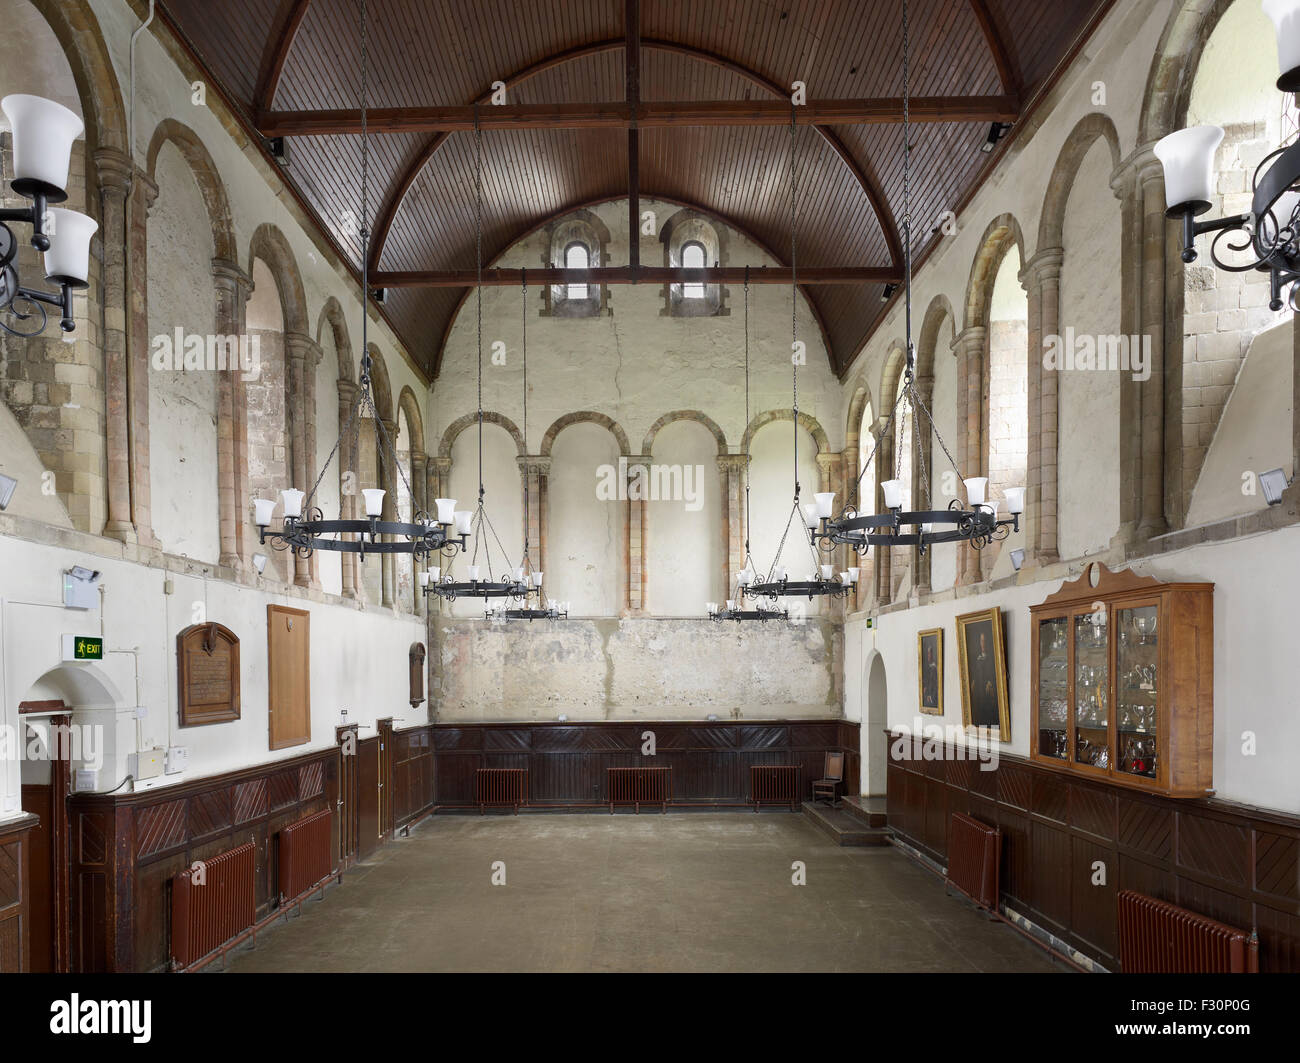 Dover College, Kent. St Martin's Priory Refectory - Stock Image